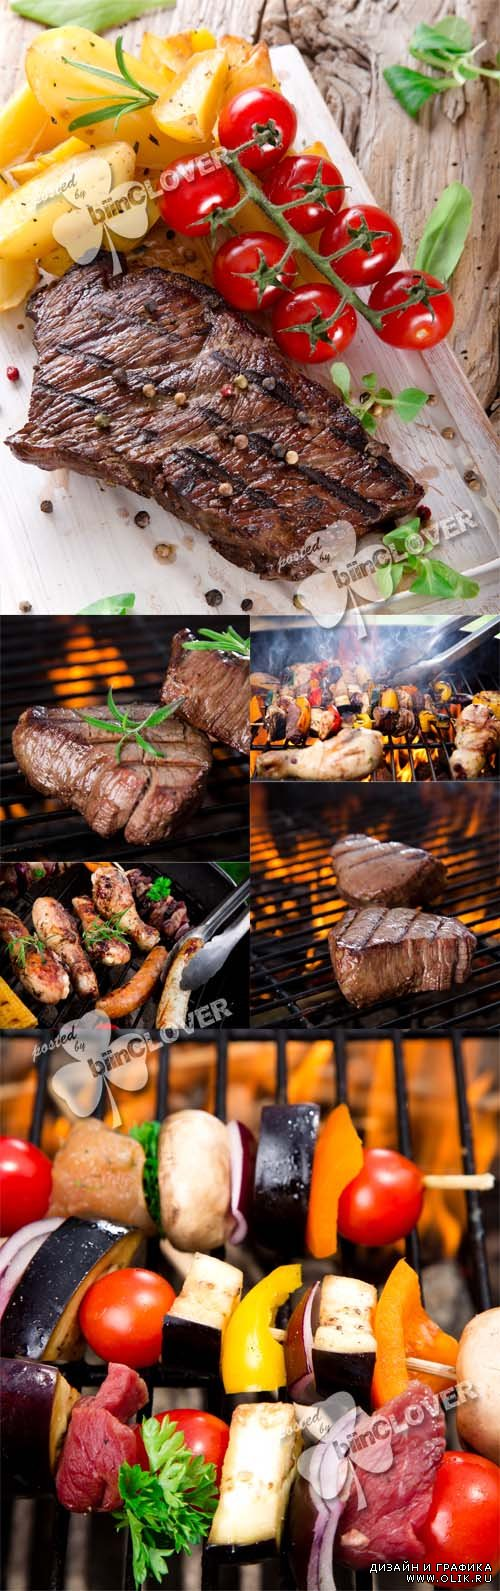 Grilled meat 0475